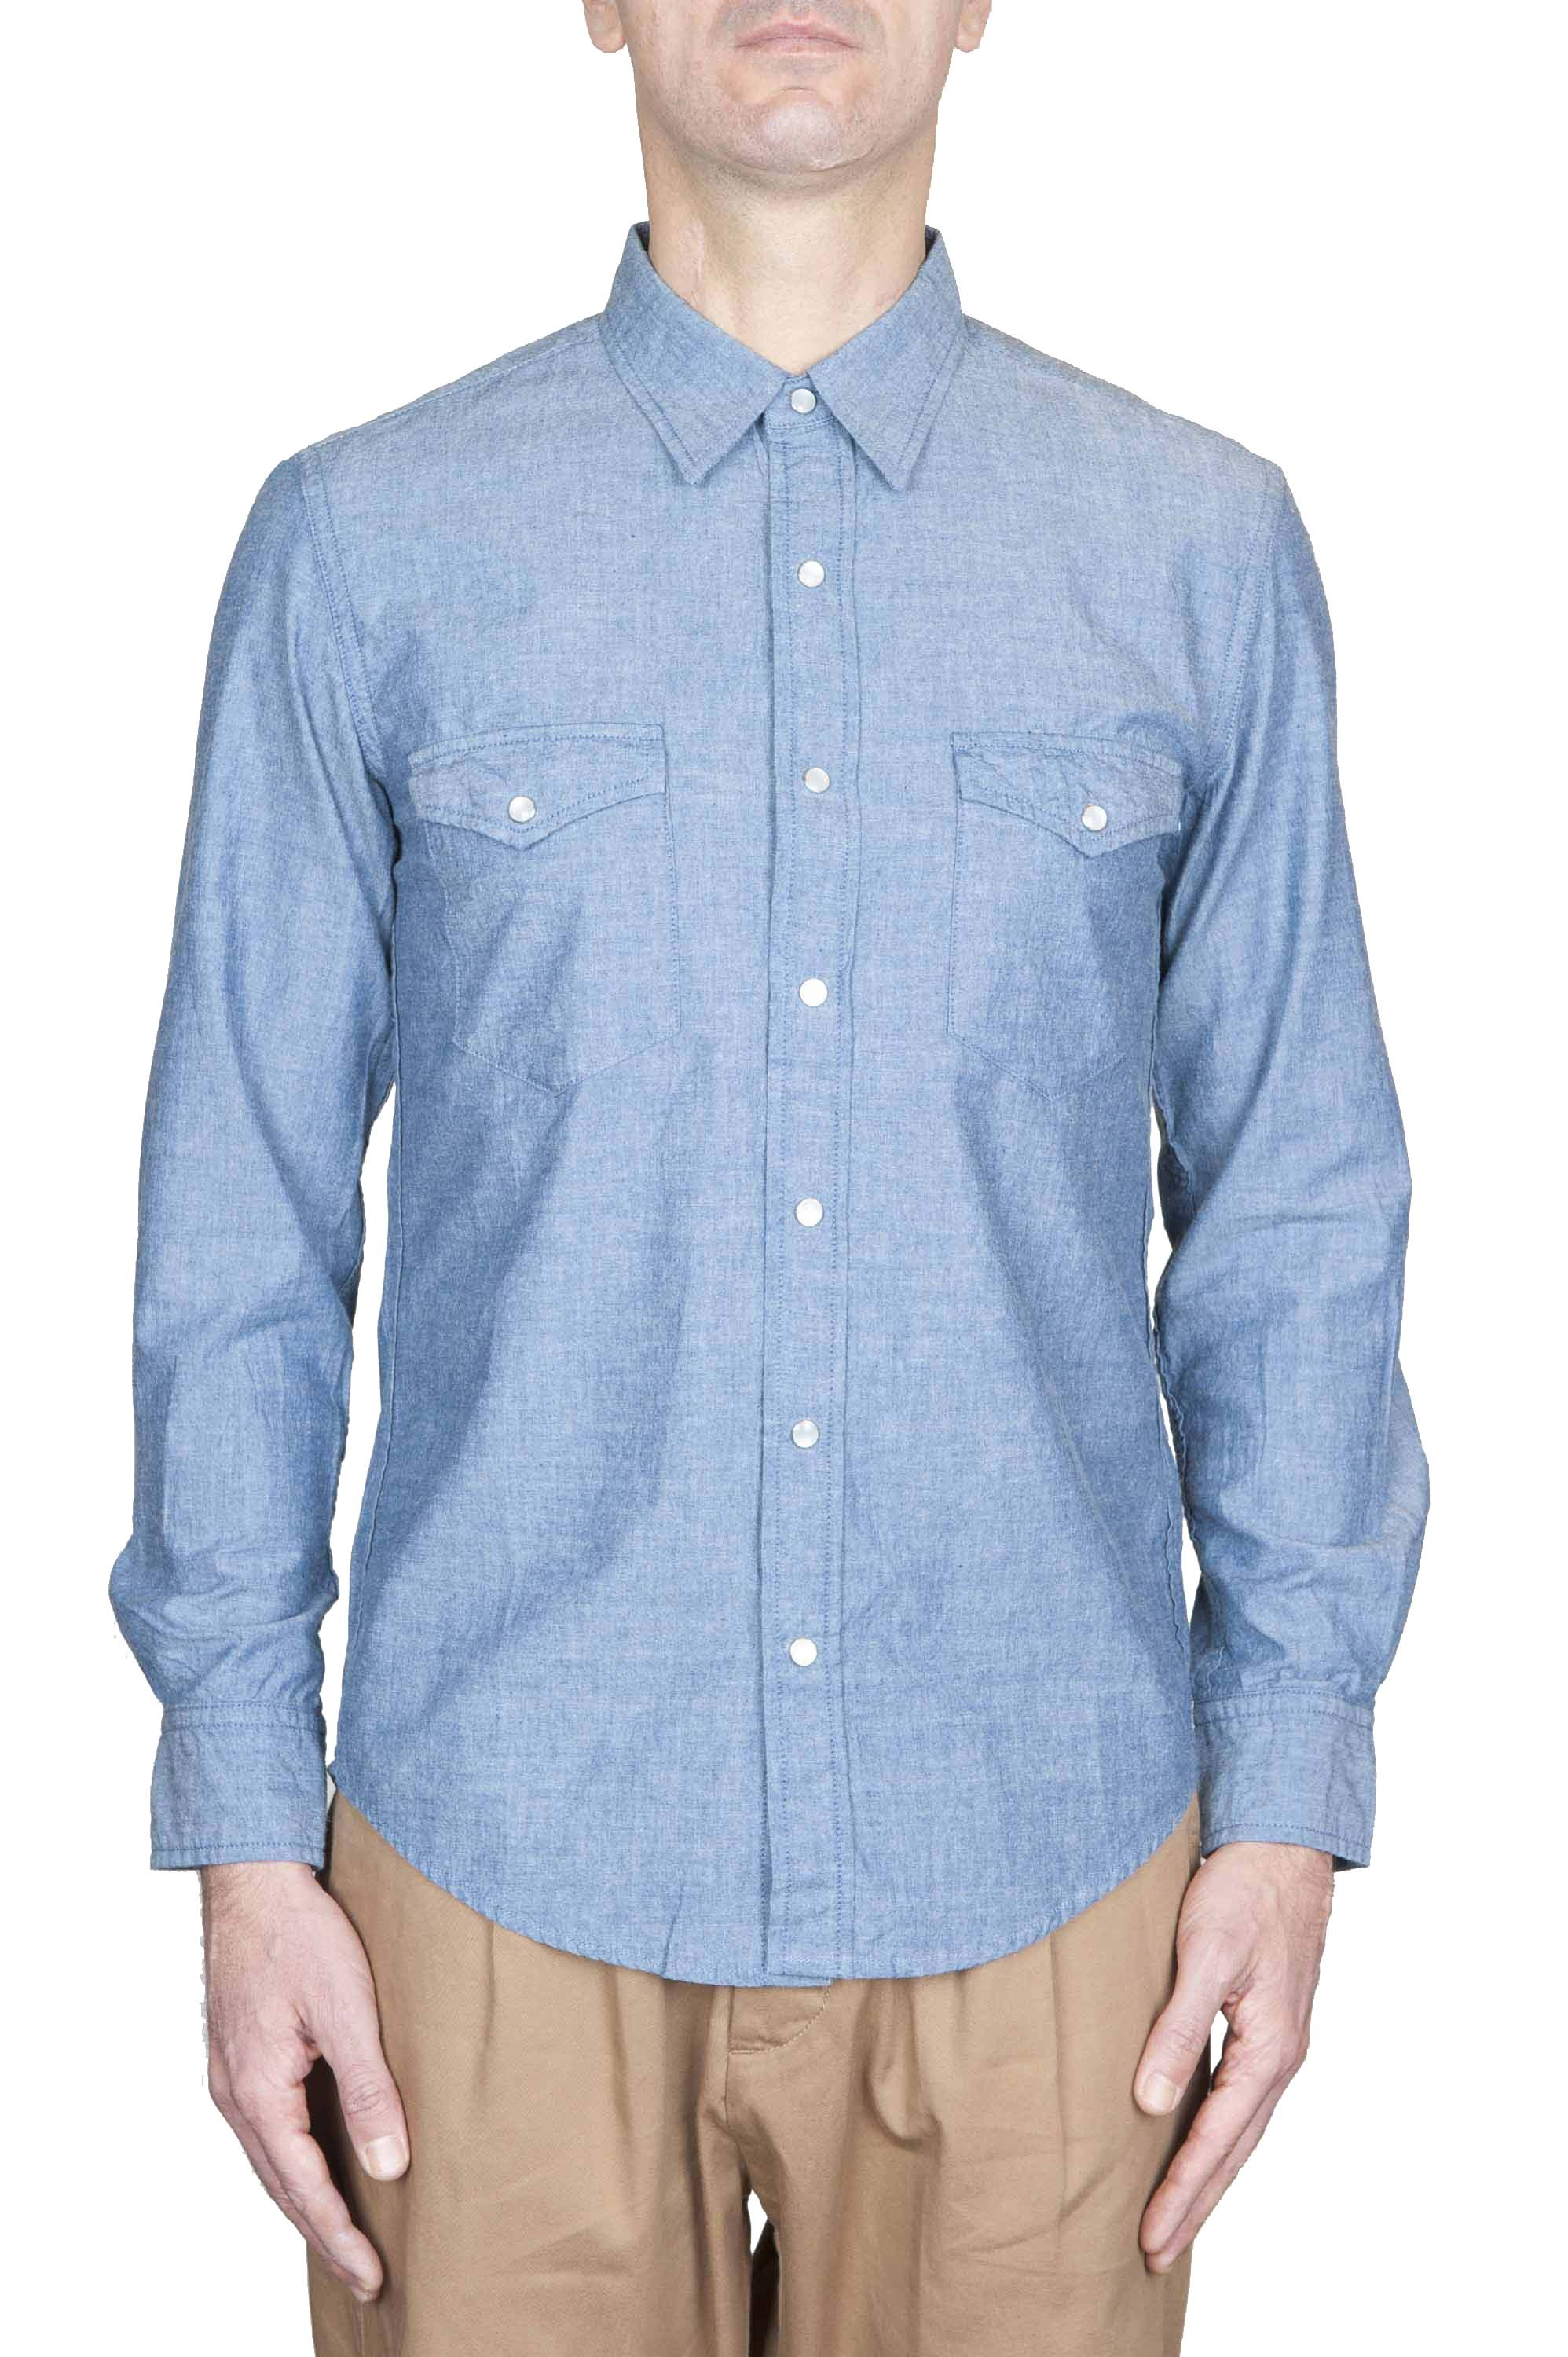 SBU 01125 Camicia western in denim 01